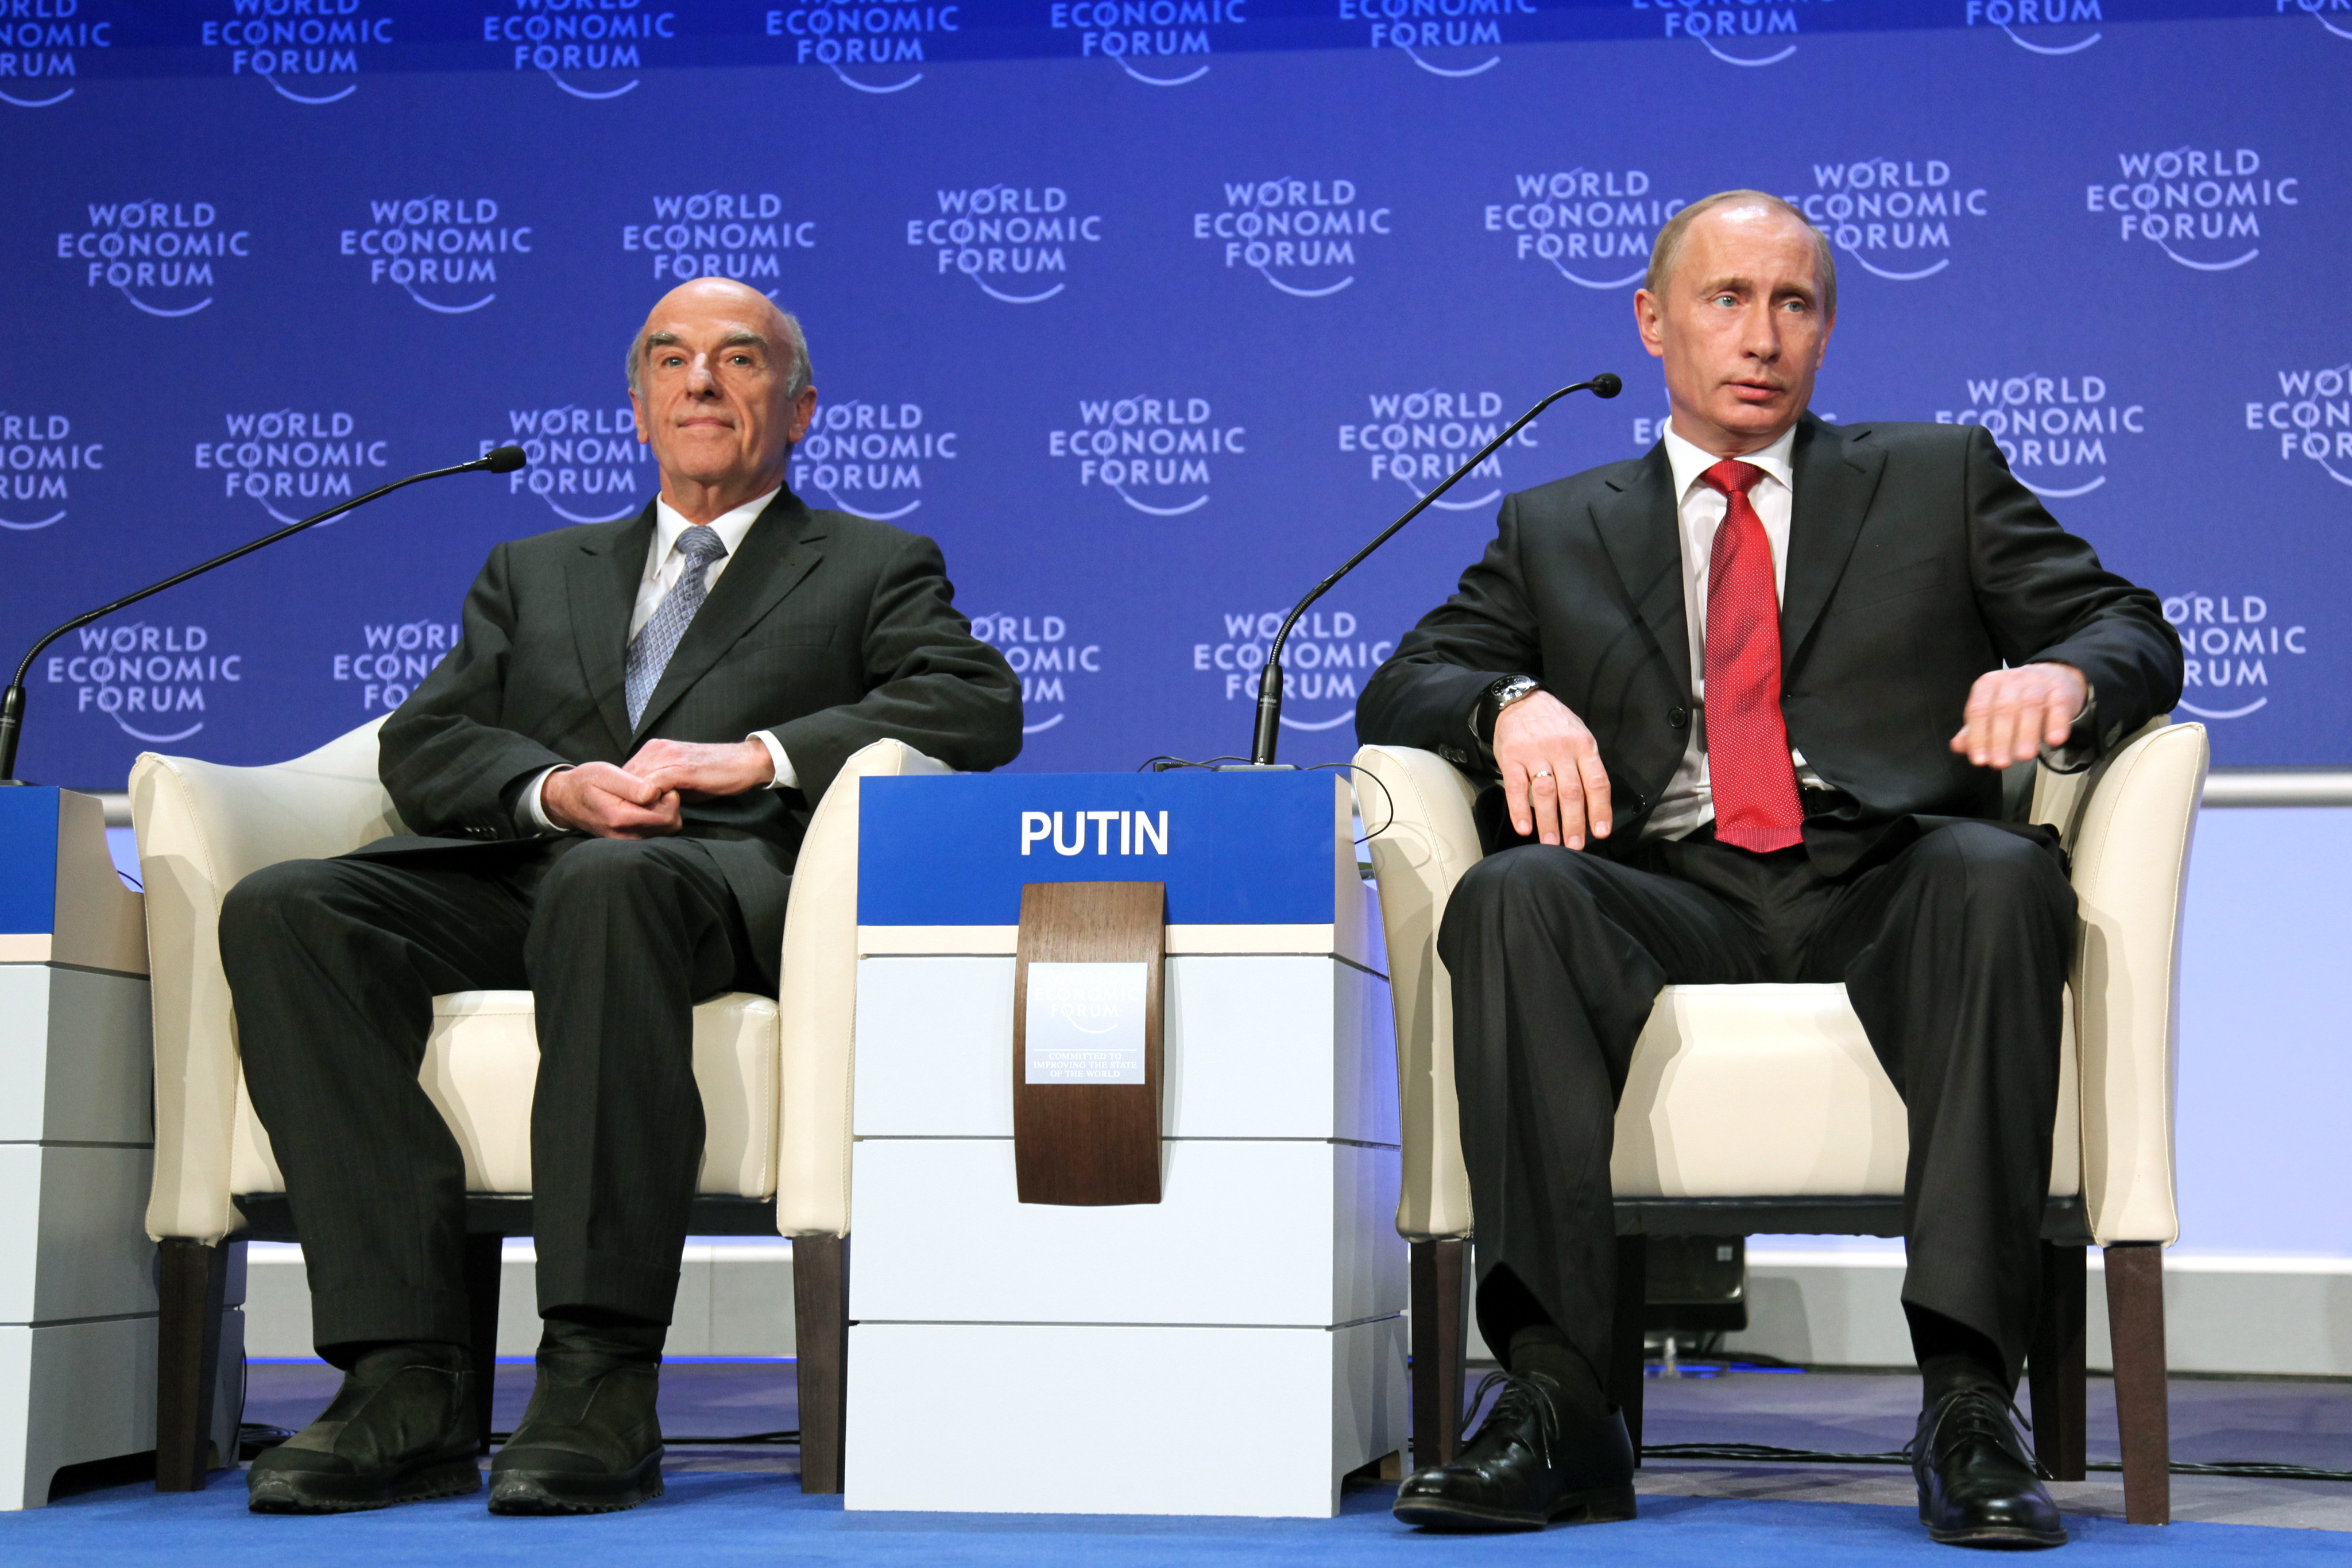 File Hans Rudolf Merz Vladimir Putin World Economic Forum Annual Meeting Davos 2009 Jpg Wikimedia Commons